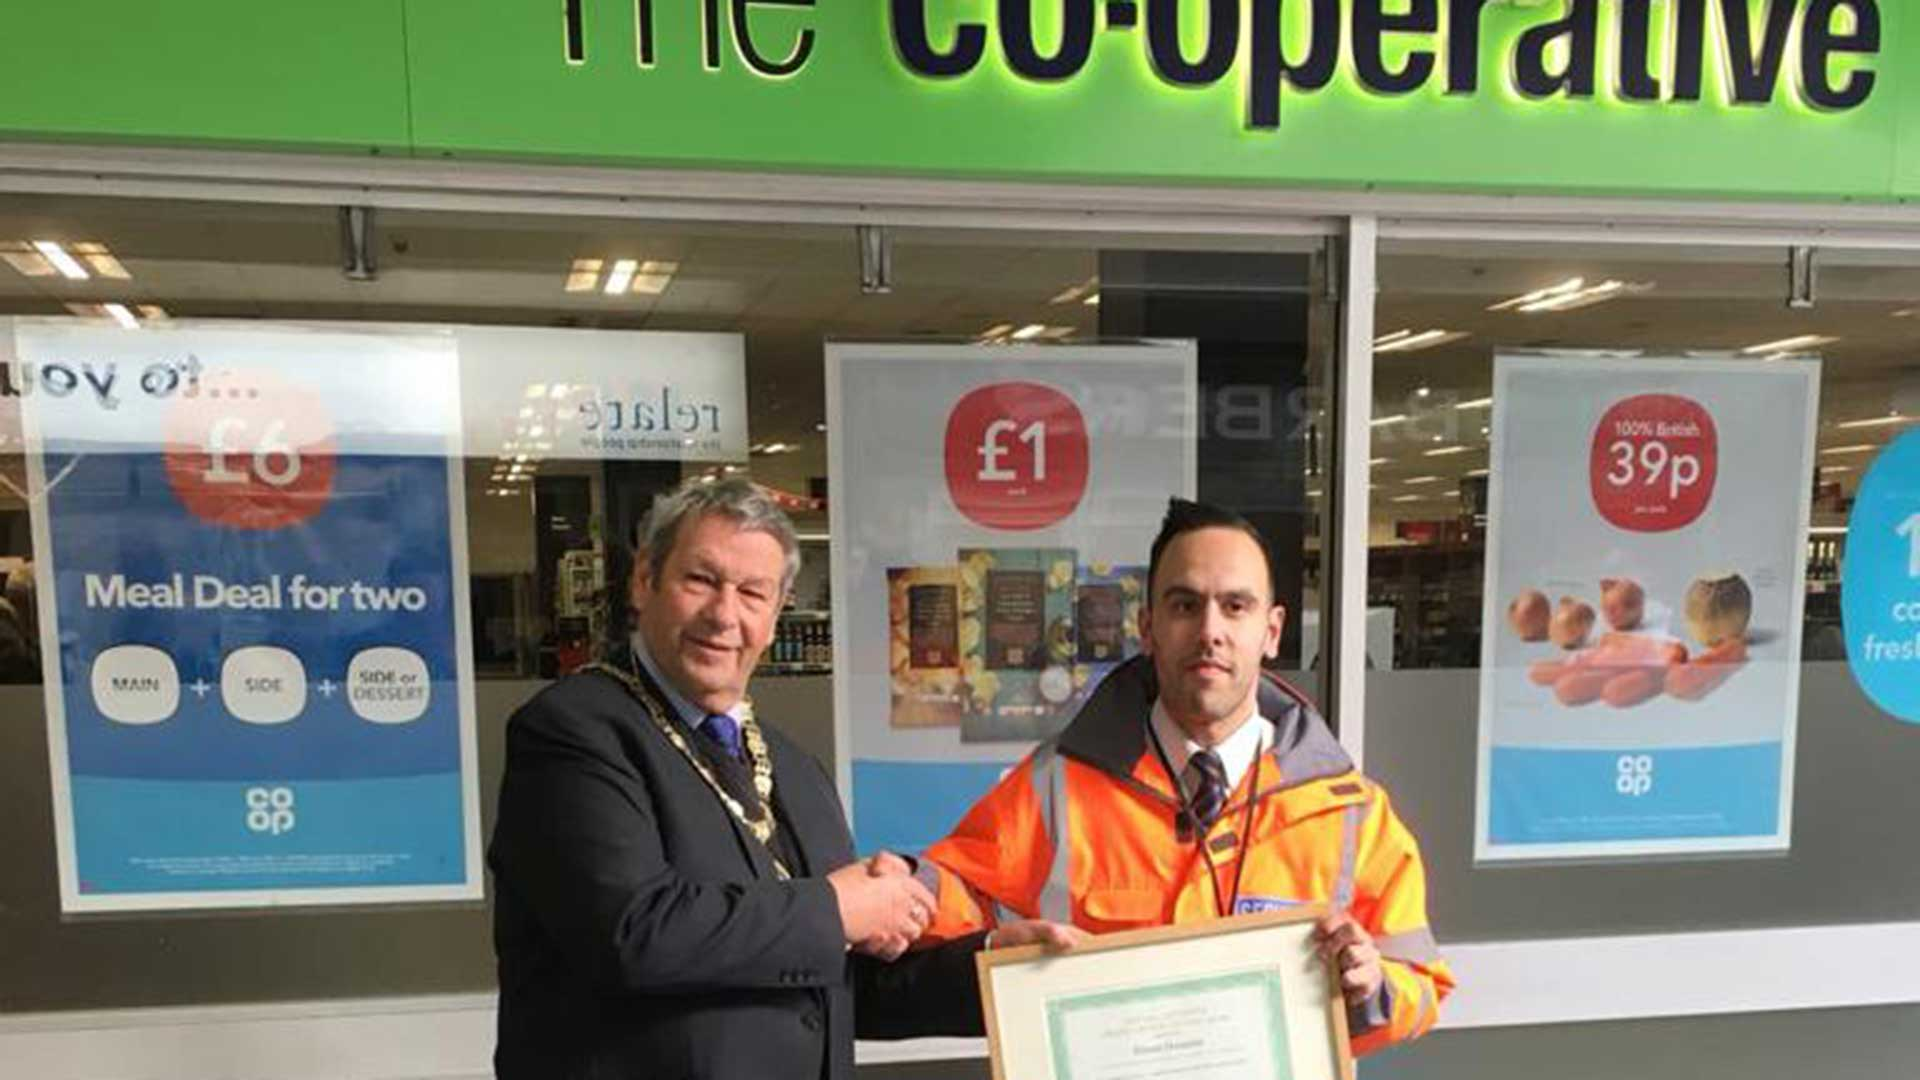 Security guard picking up award at Co-Op